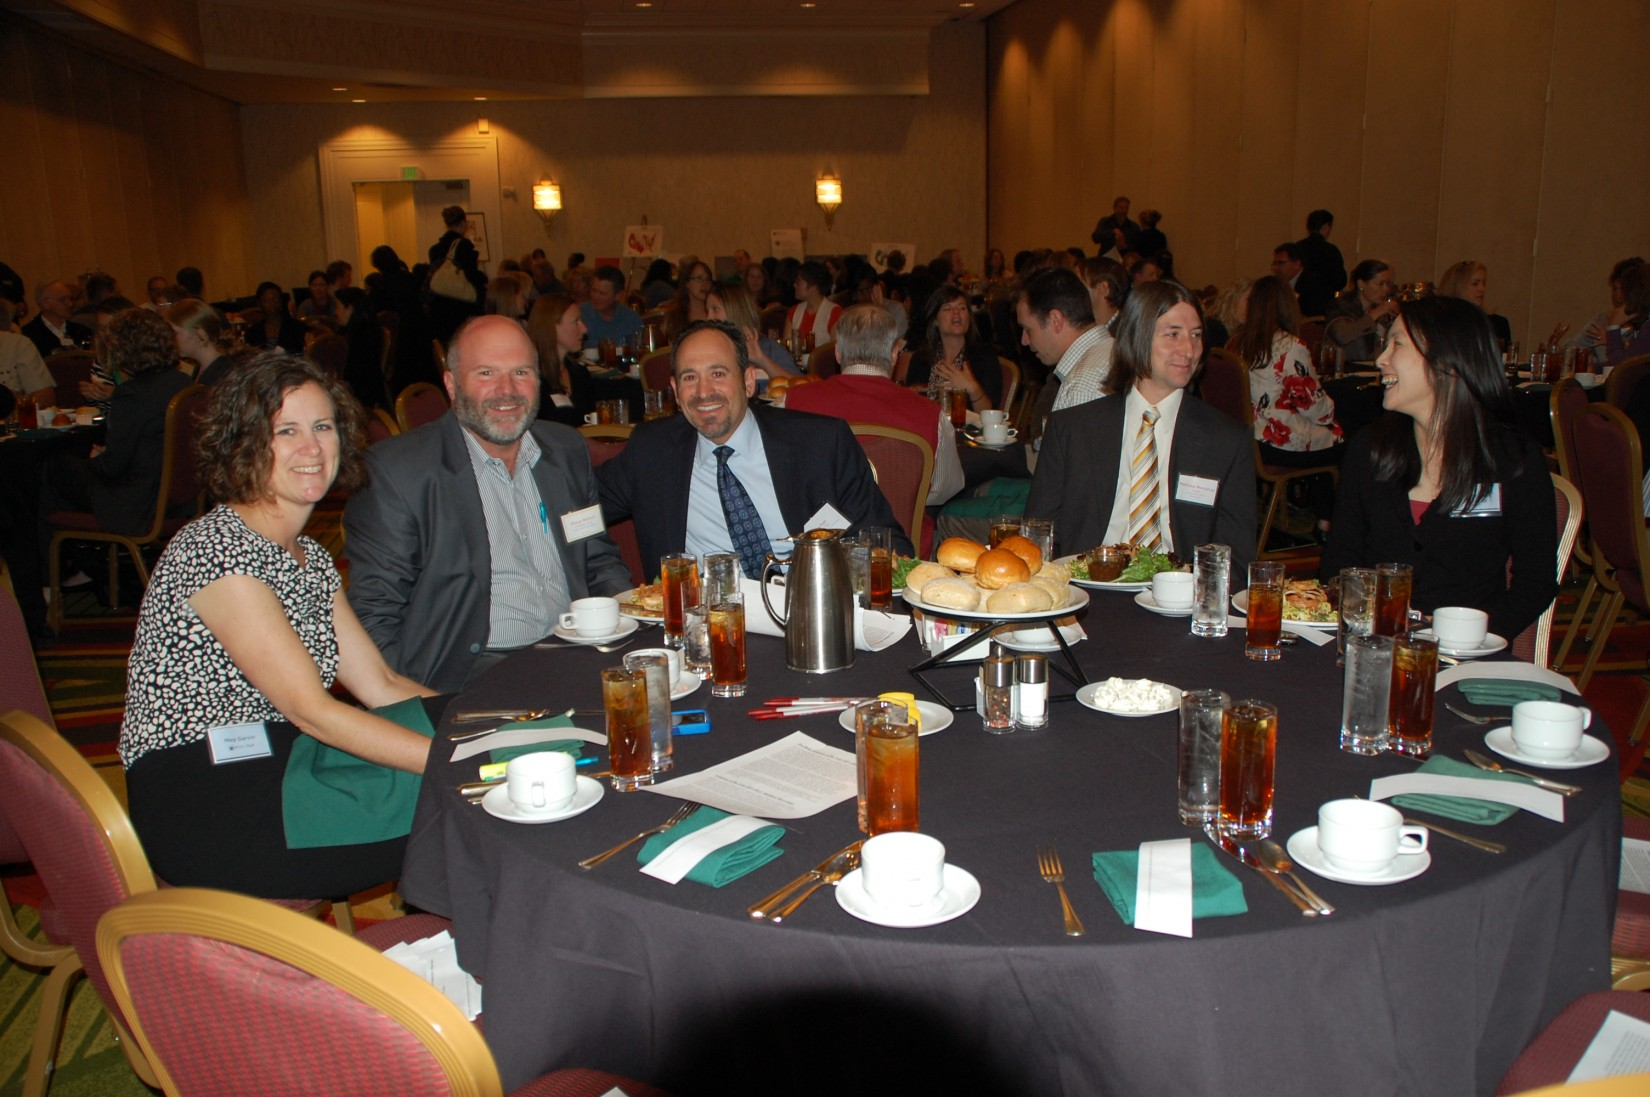 Meg Garvin, Doug Beloof, Michael Fell, Matthew Merryman, and Amy Liu enjoy lunch at the Conference.